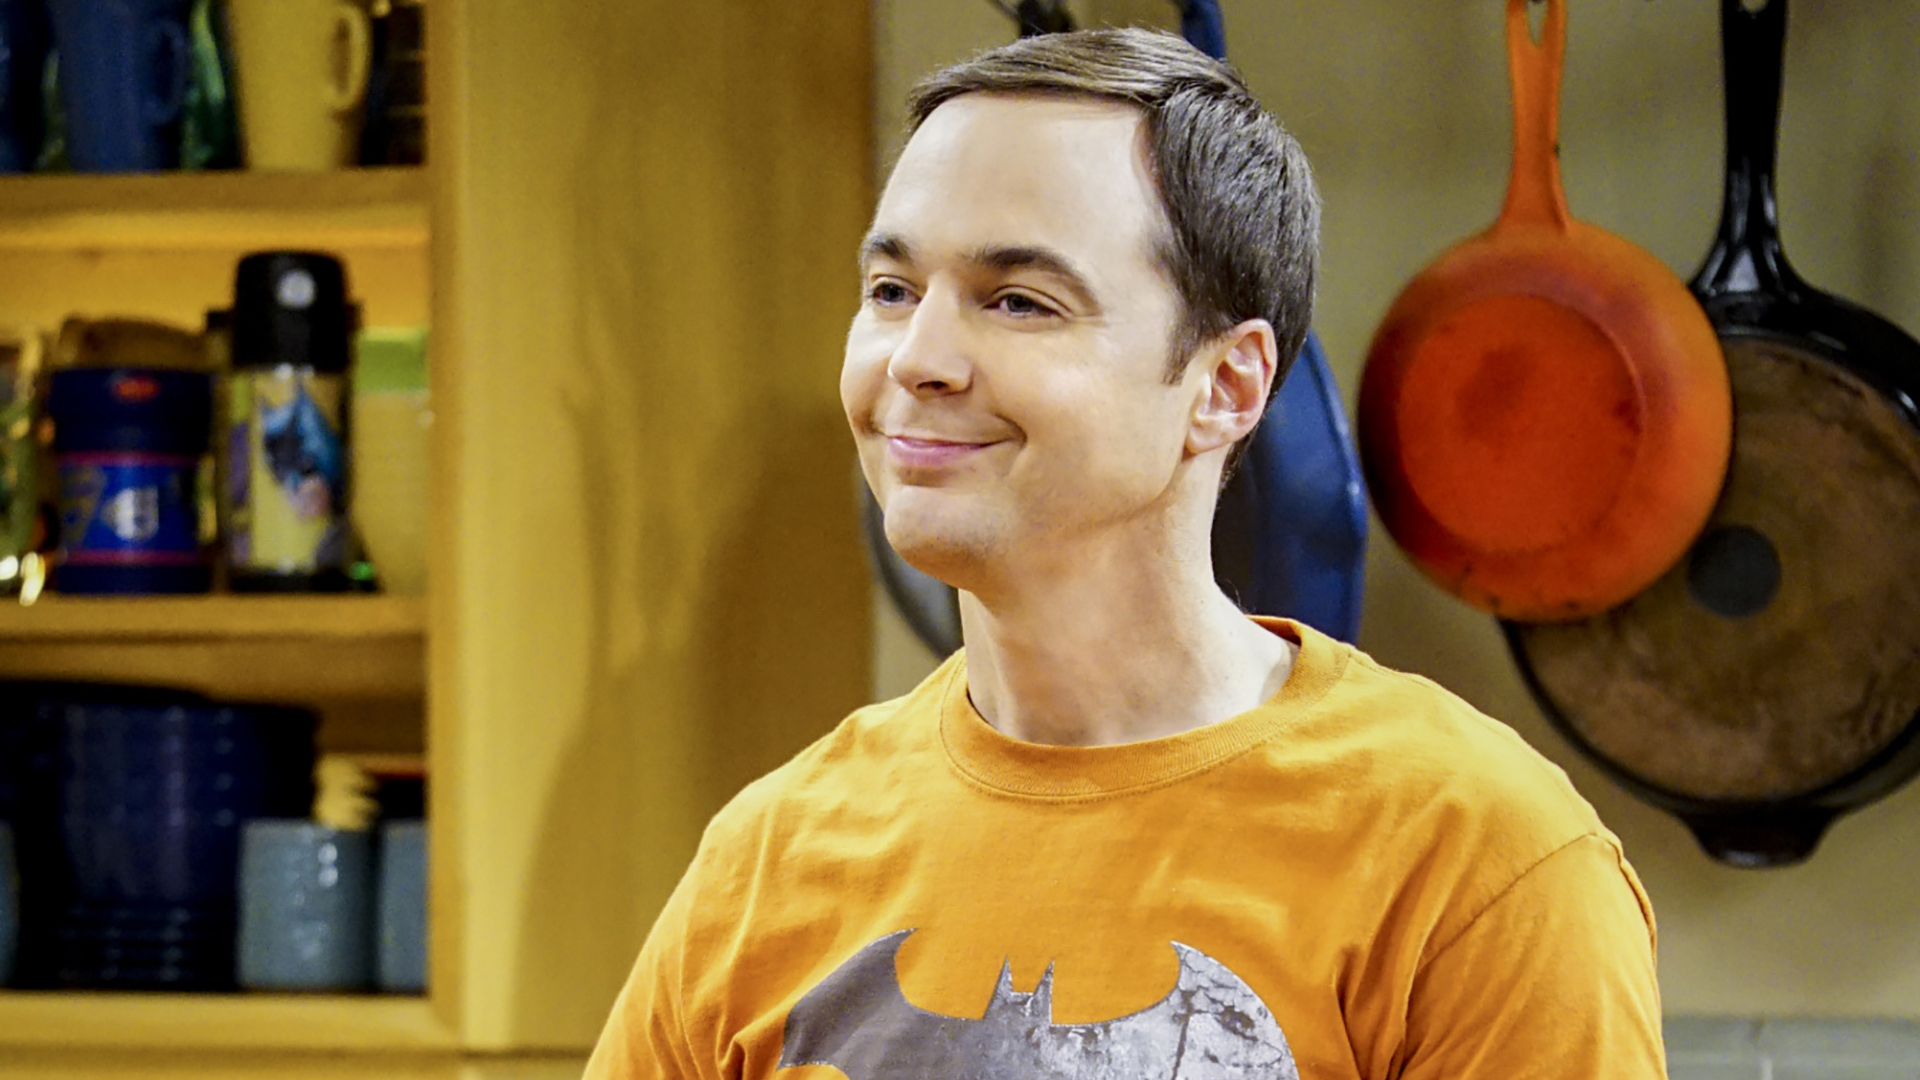 Sheldon appears pleased with himself.